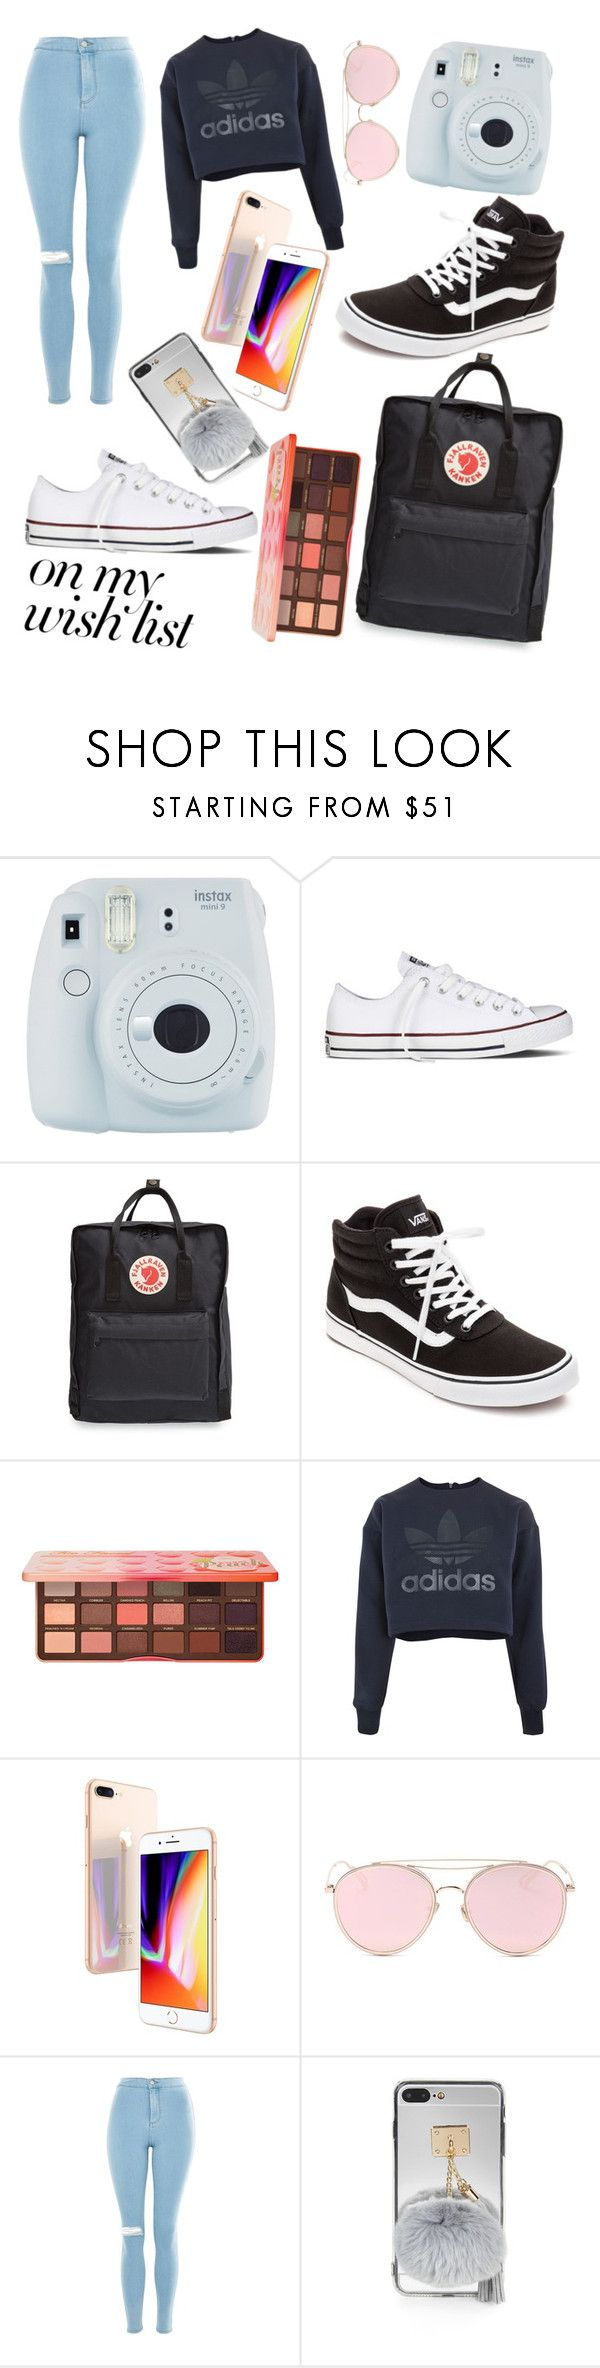 """#PolyPresents: Wish List"" by sandstorm-xox ❤ liked on Polyvore featuring Fuji, Converse, Fjällräven, Vans, Too Faced Cosmetics, adidas, Apple, LMNT, Topshop and contestentry"